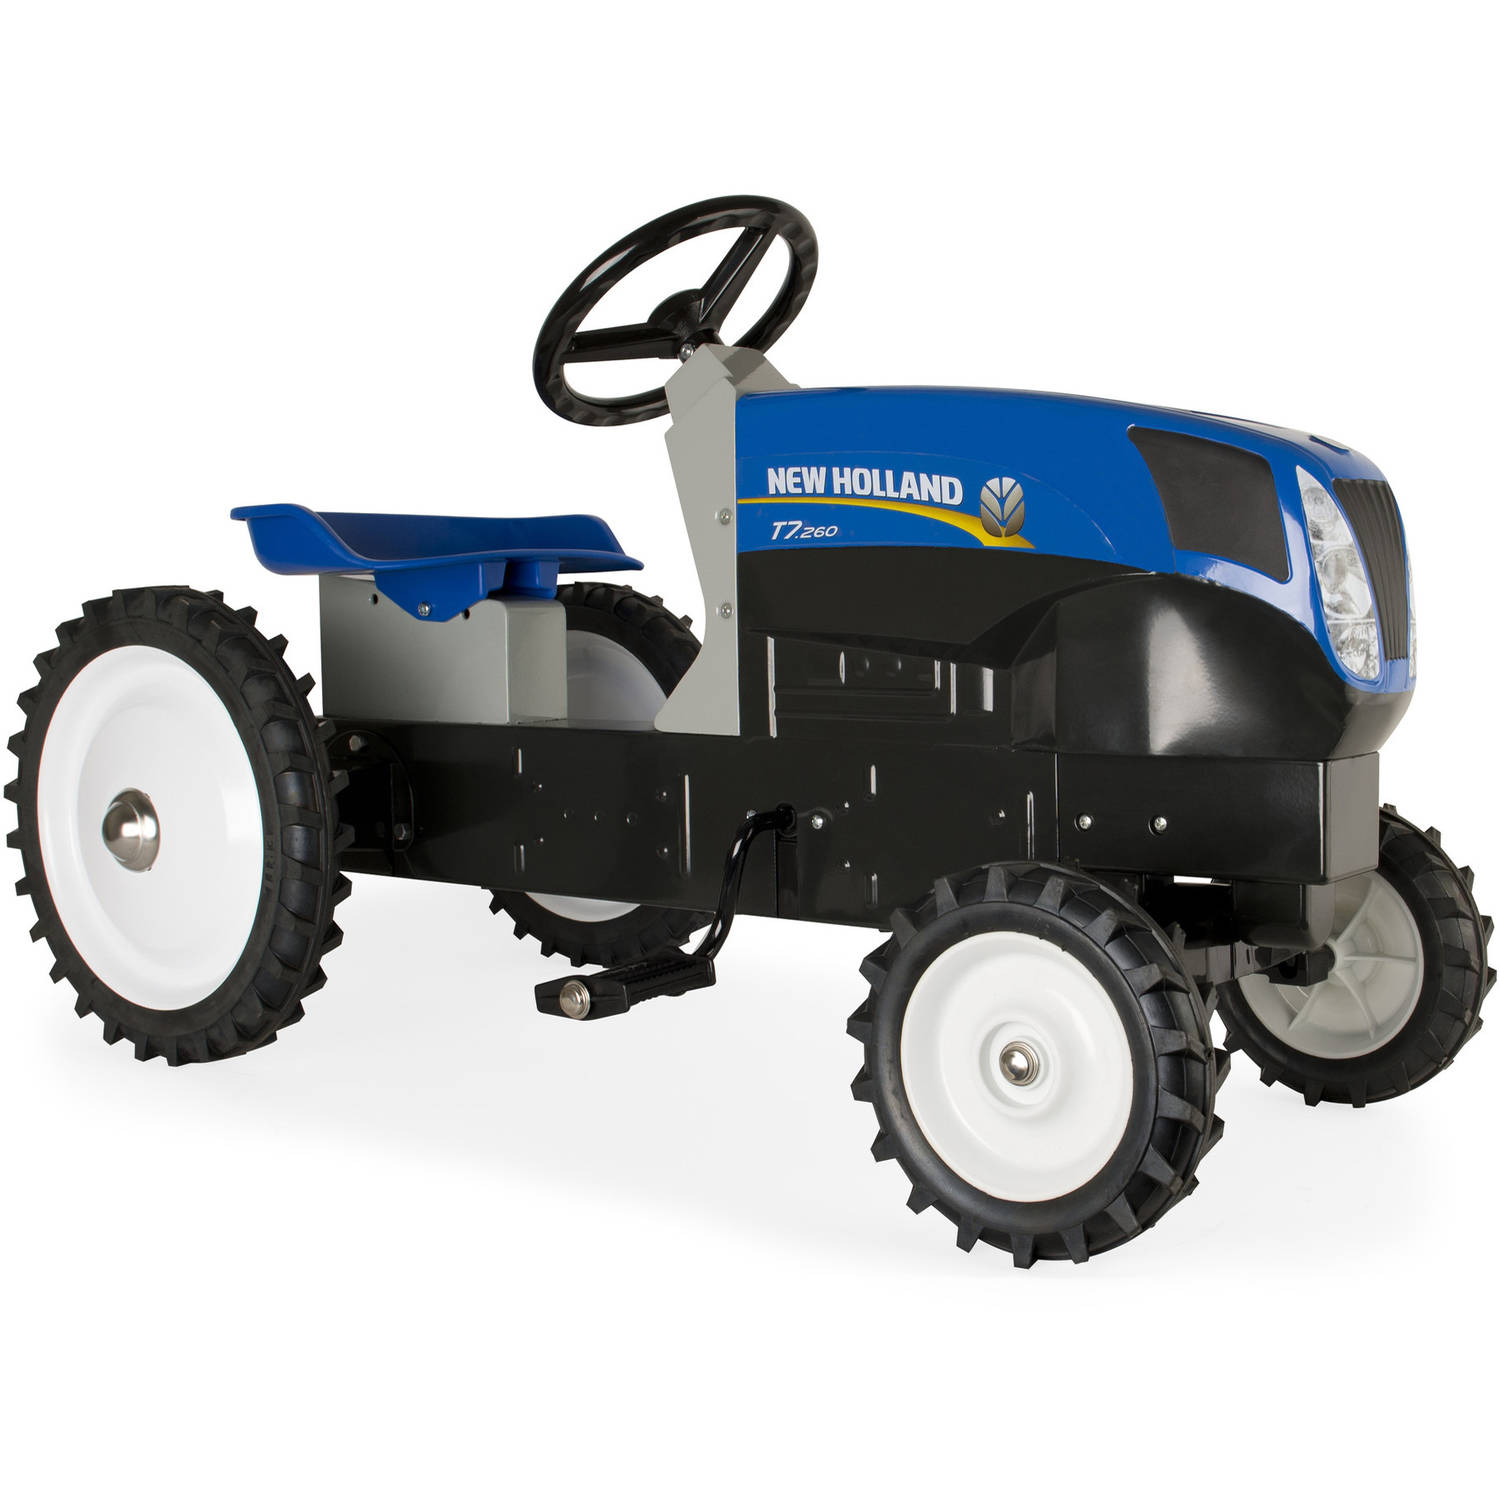 Ertl New Holland Pedal Tractor, Blue